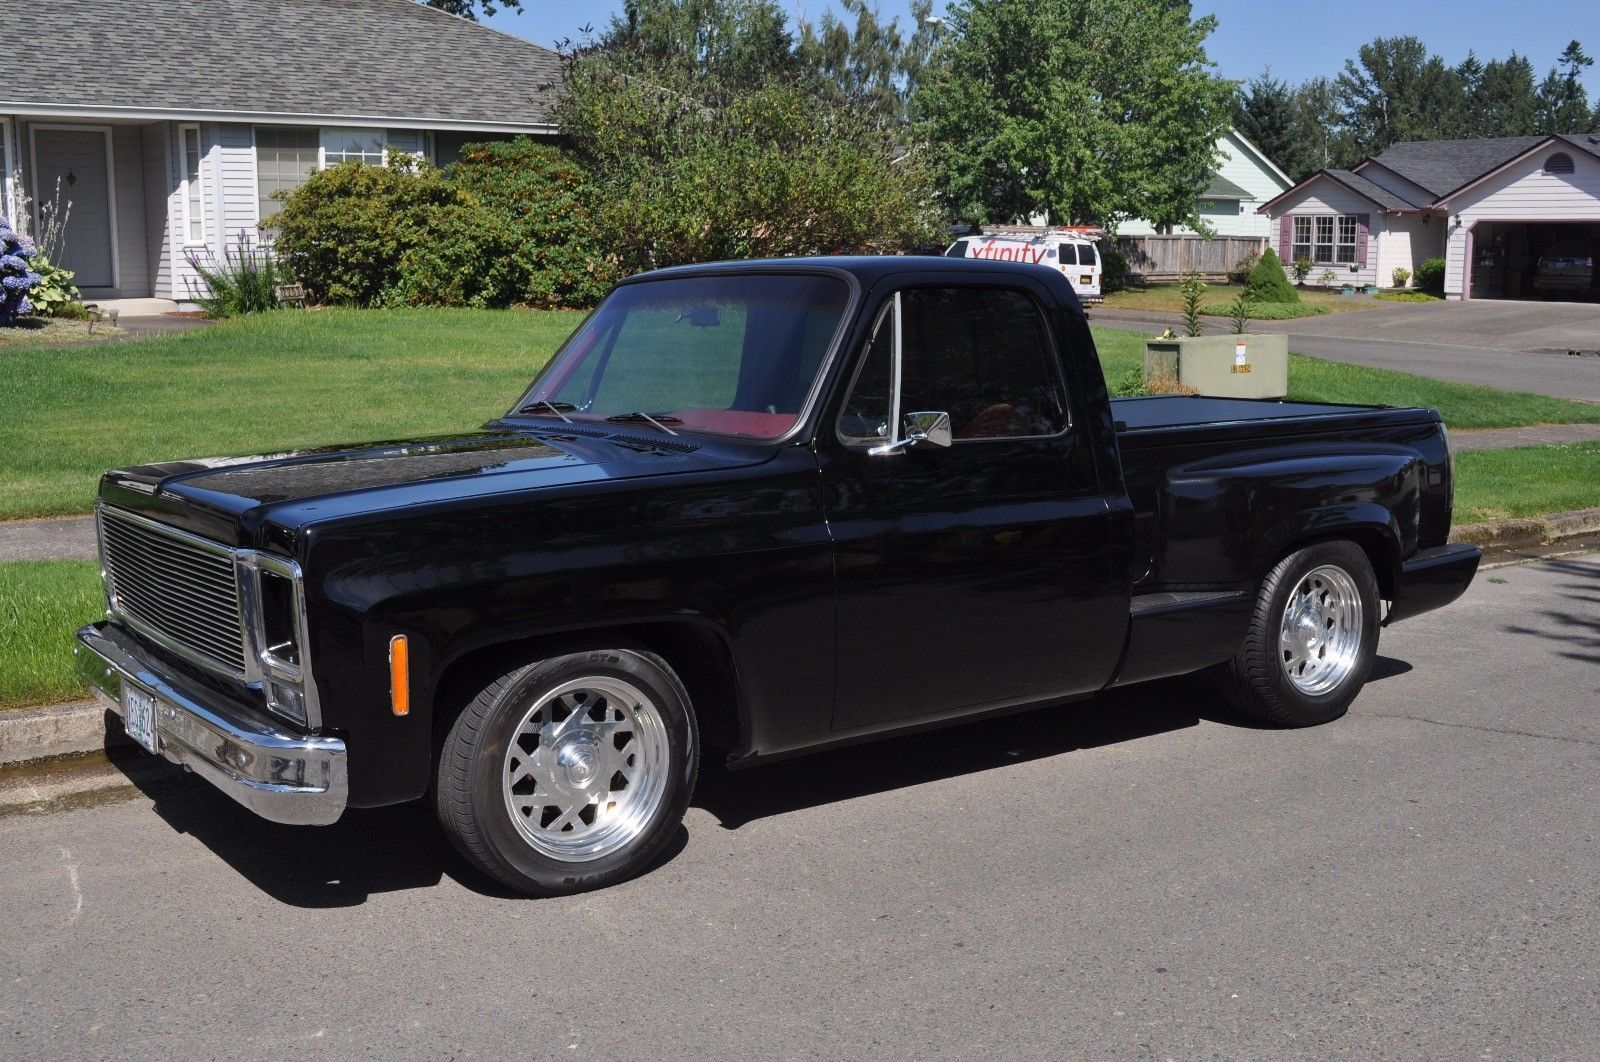 1979 Chevrolet Silverado K10 4wd Short Bed Back In The Day Trucks Were Allowed To Be Trucks Now Everything Has To Be Plush And Car Li Lifted Chevy Trucks